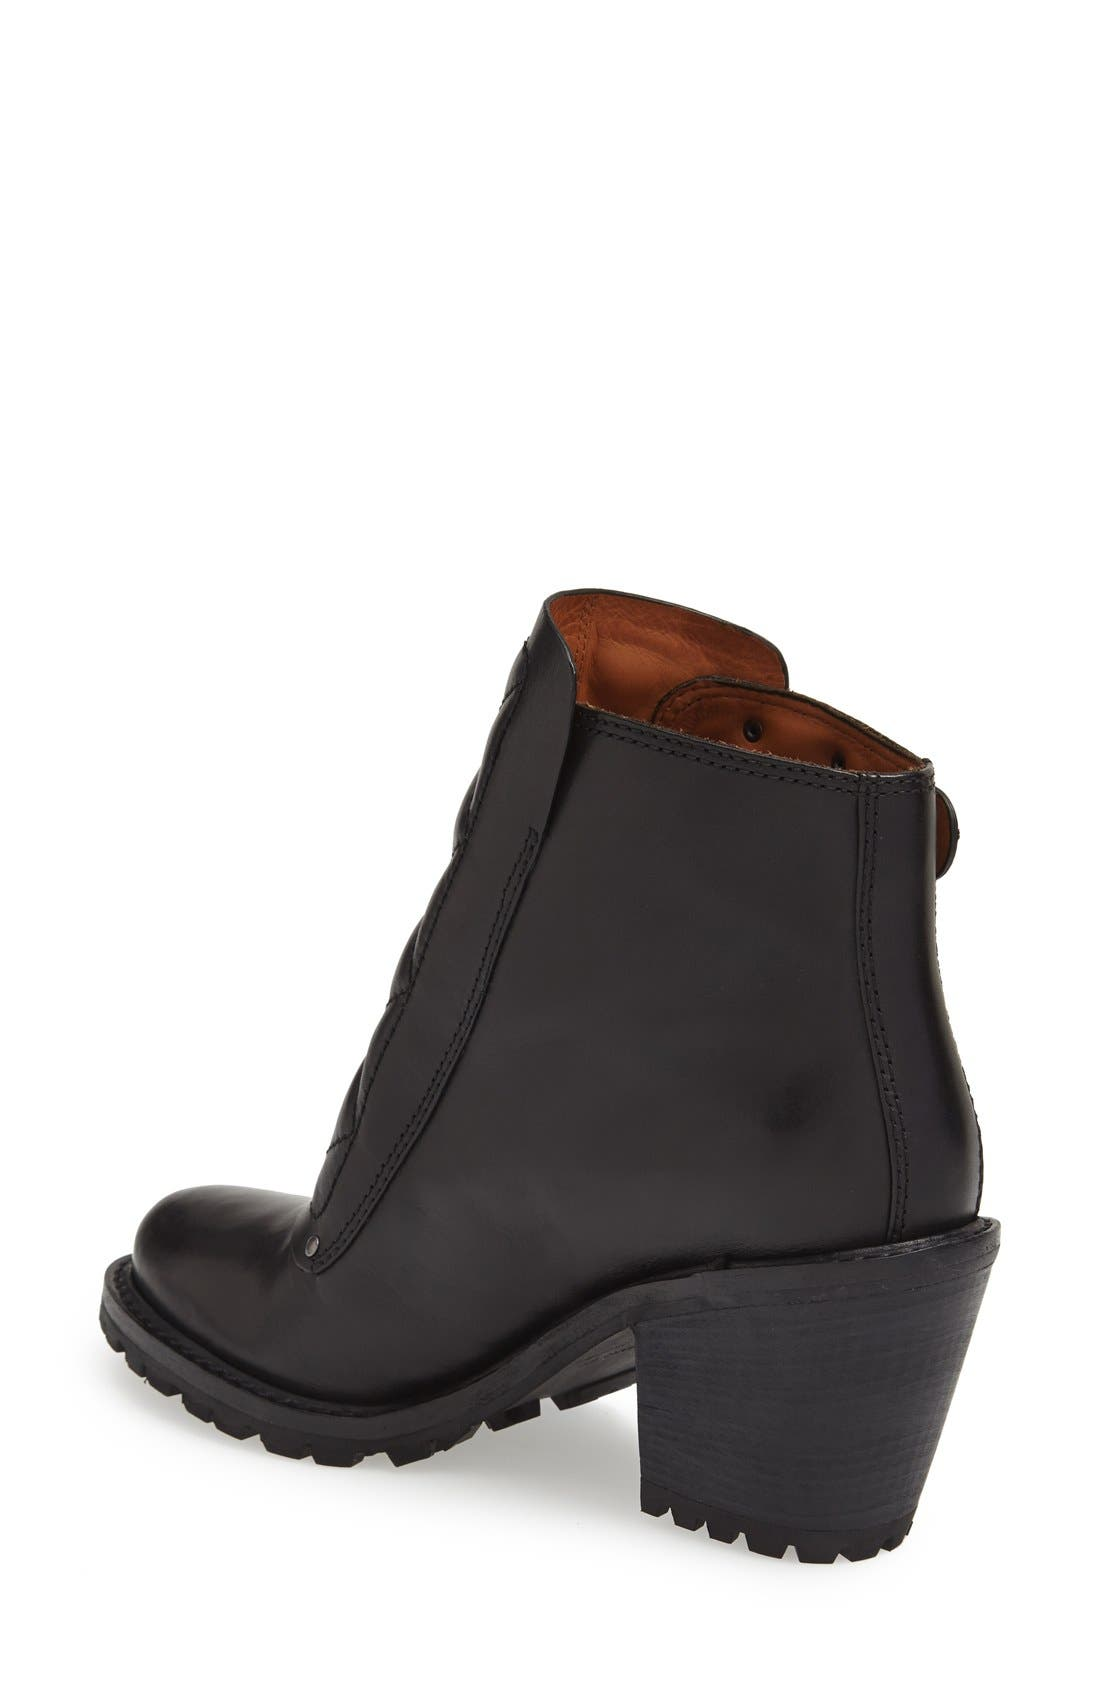 MARC BY MARC JACOBS Ankle Boot,                             Alternate thumbnail 2, color,                             001